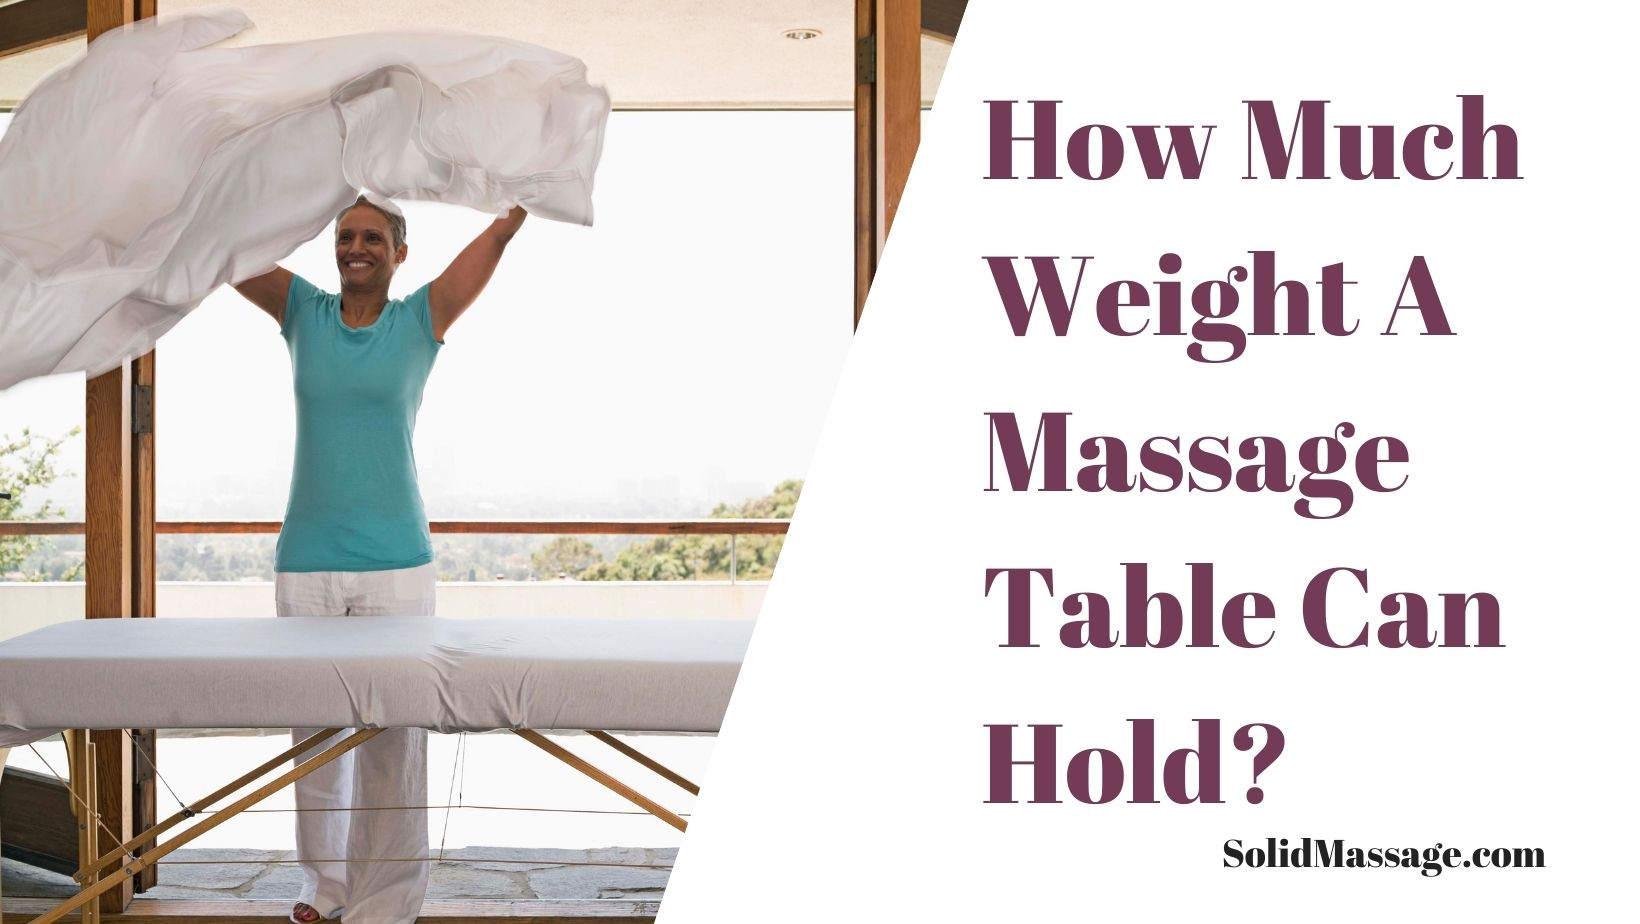 How Much Weight A Massage Table Can Hold